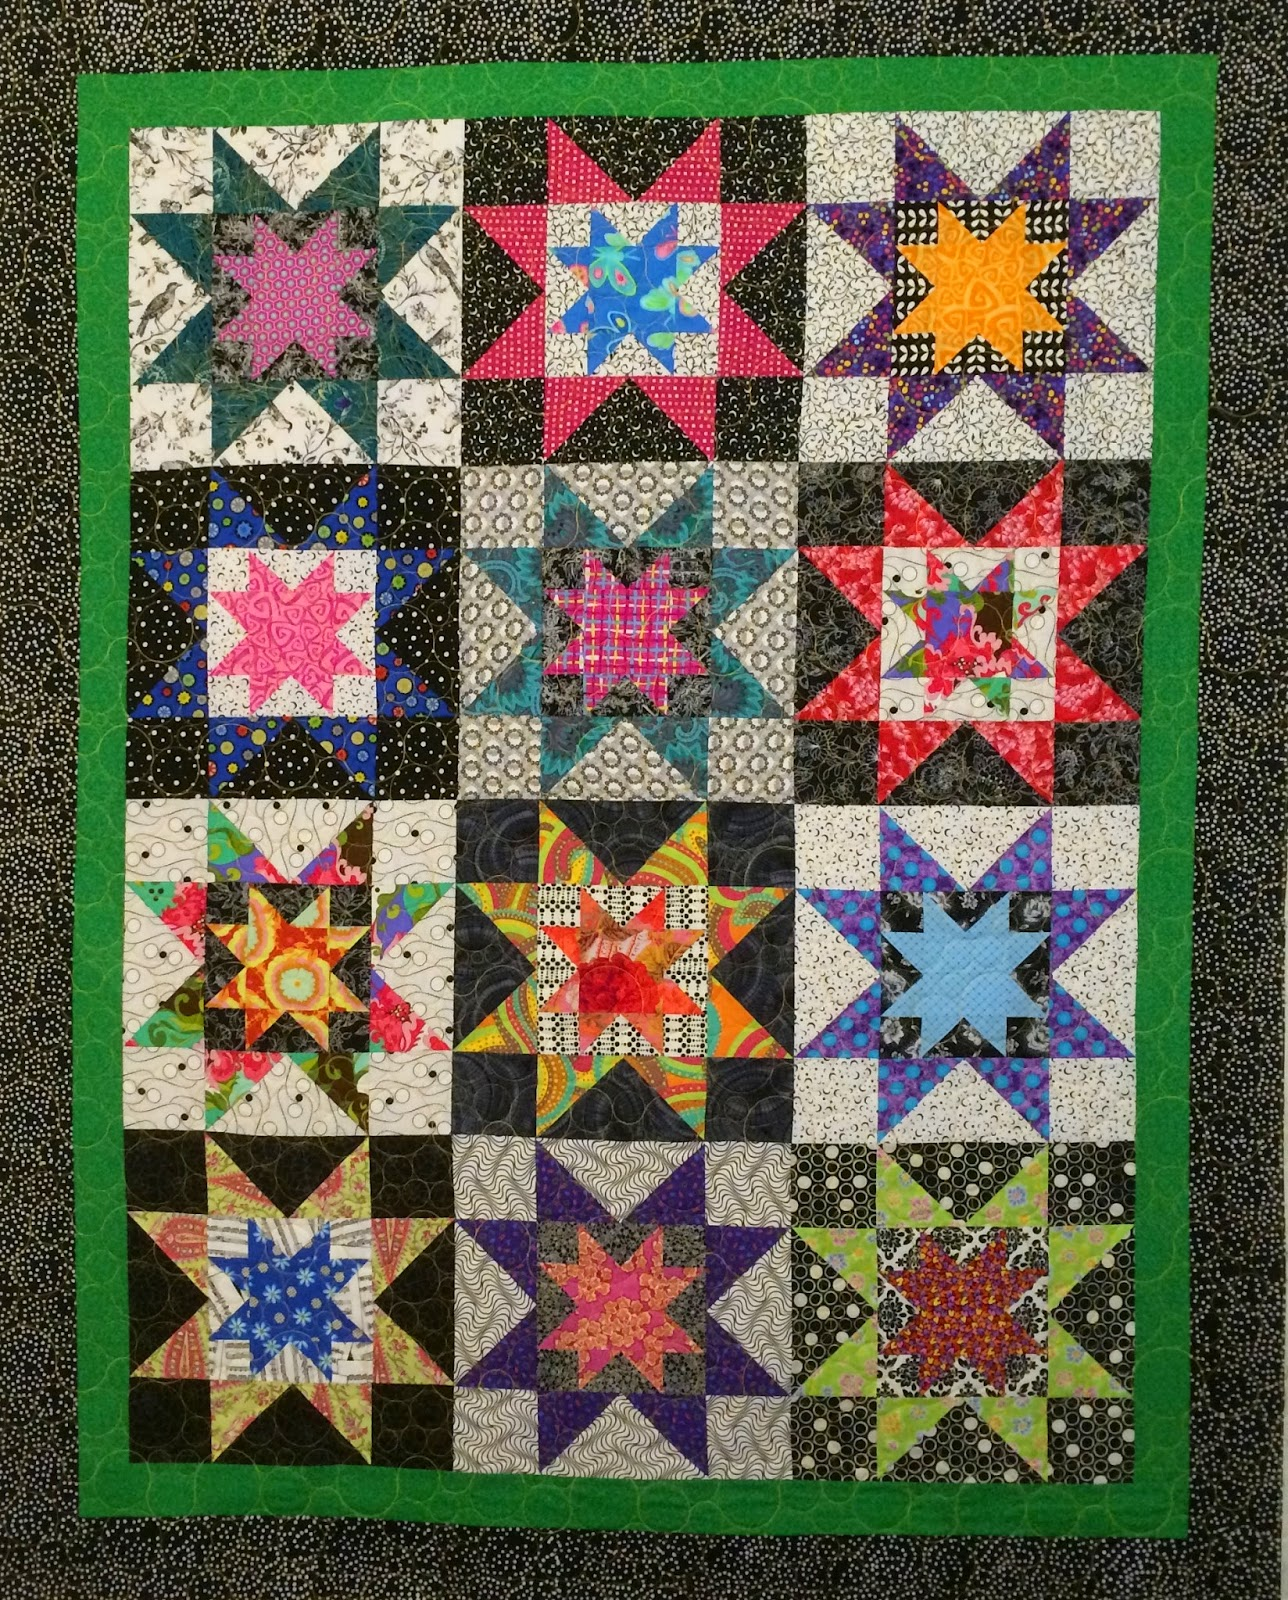 Barbara Garner's Starbursts with 8 Points Quilt